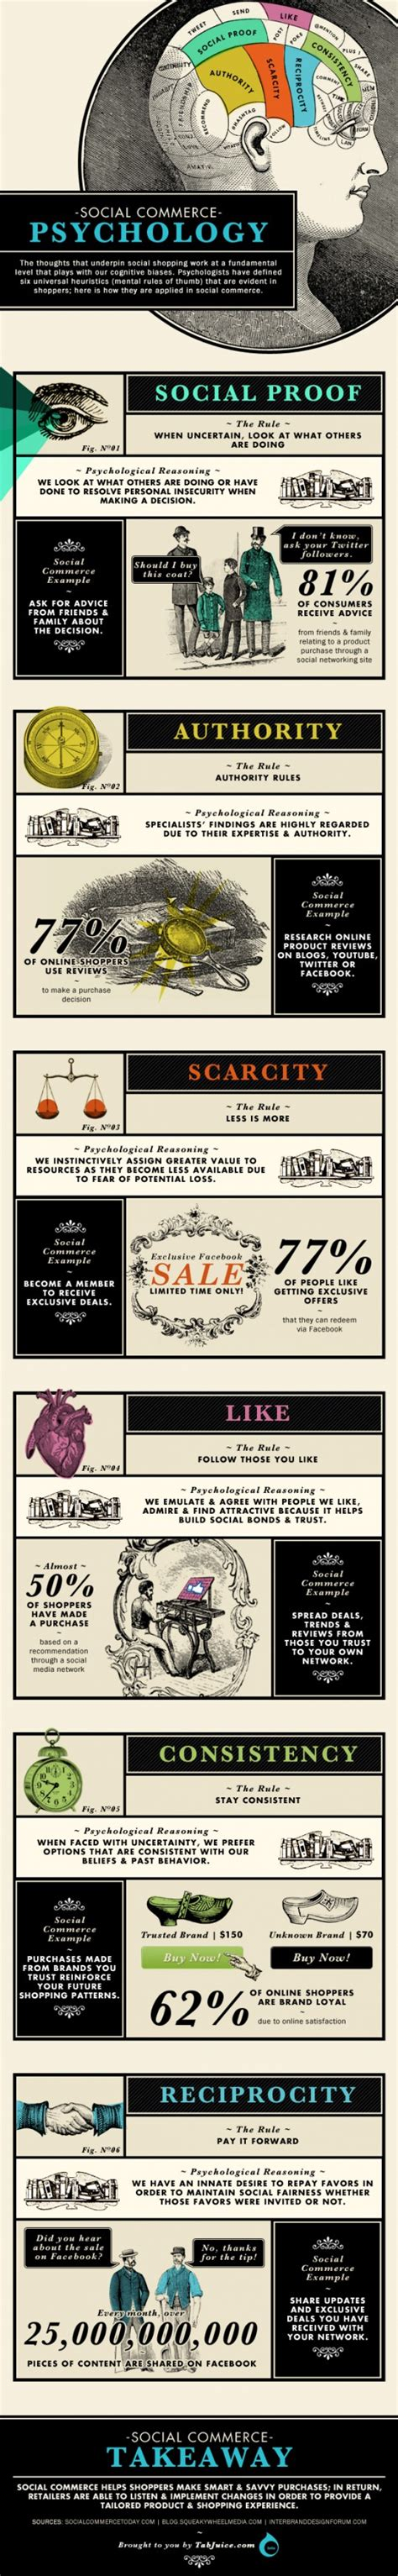 infographic the psychology of graphics bigstock blog infographic the psychology of social commerce digital